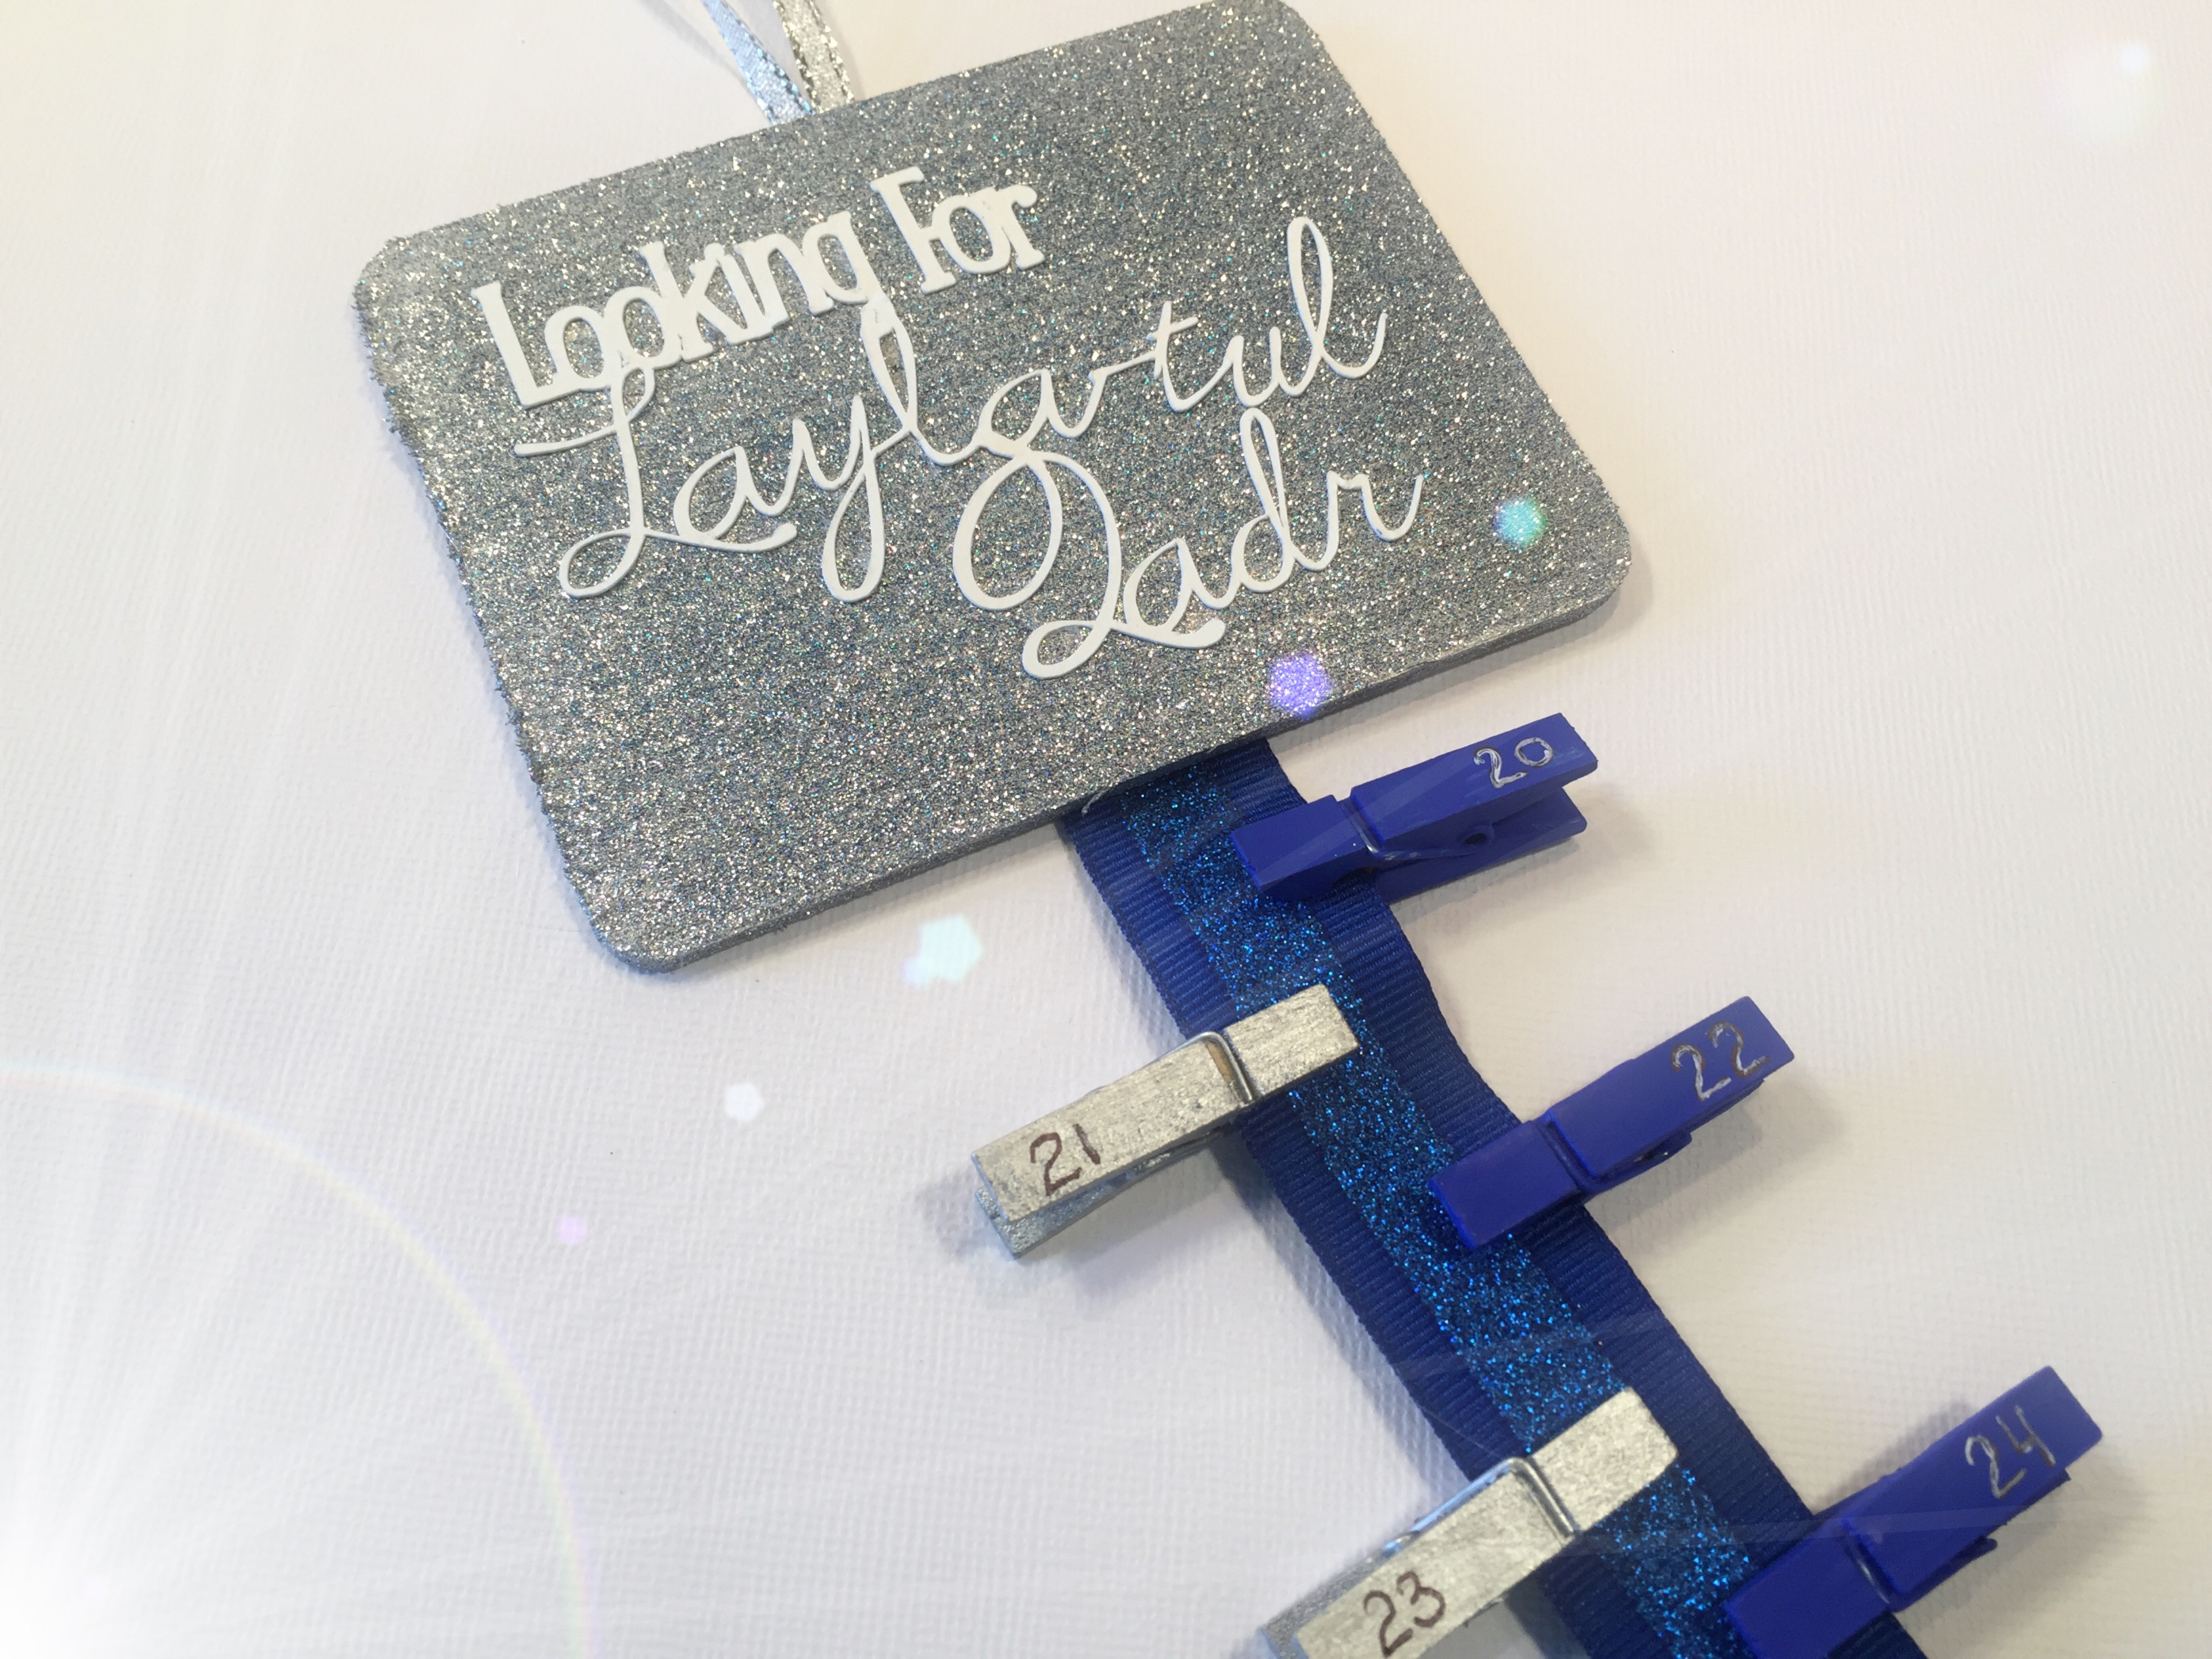 How to Look for Layla tul Qadr | Kids' craft